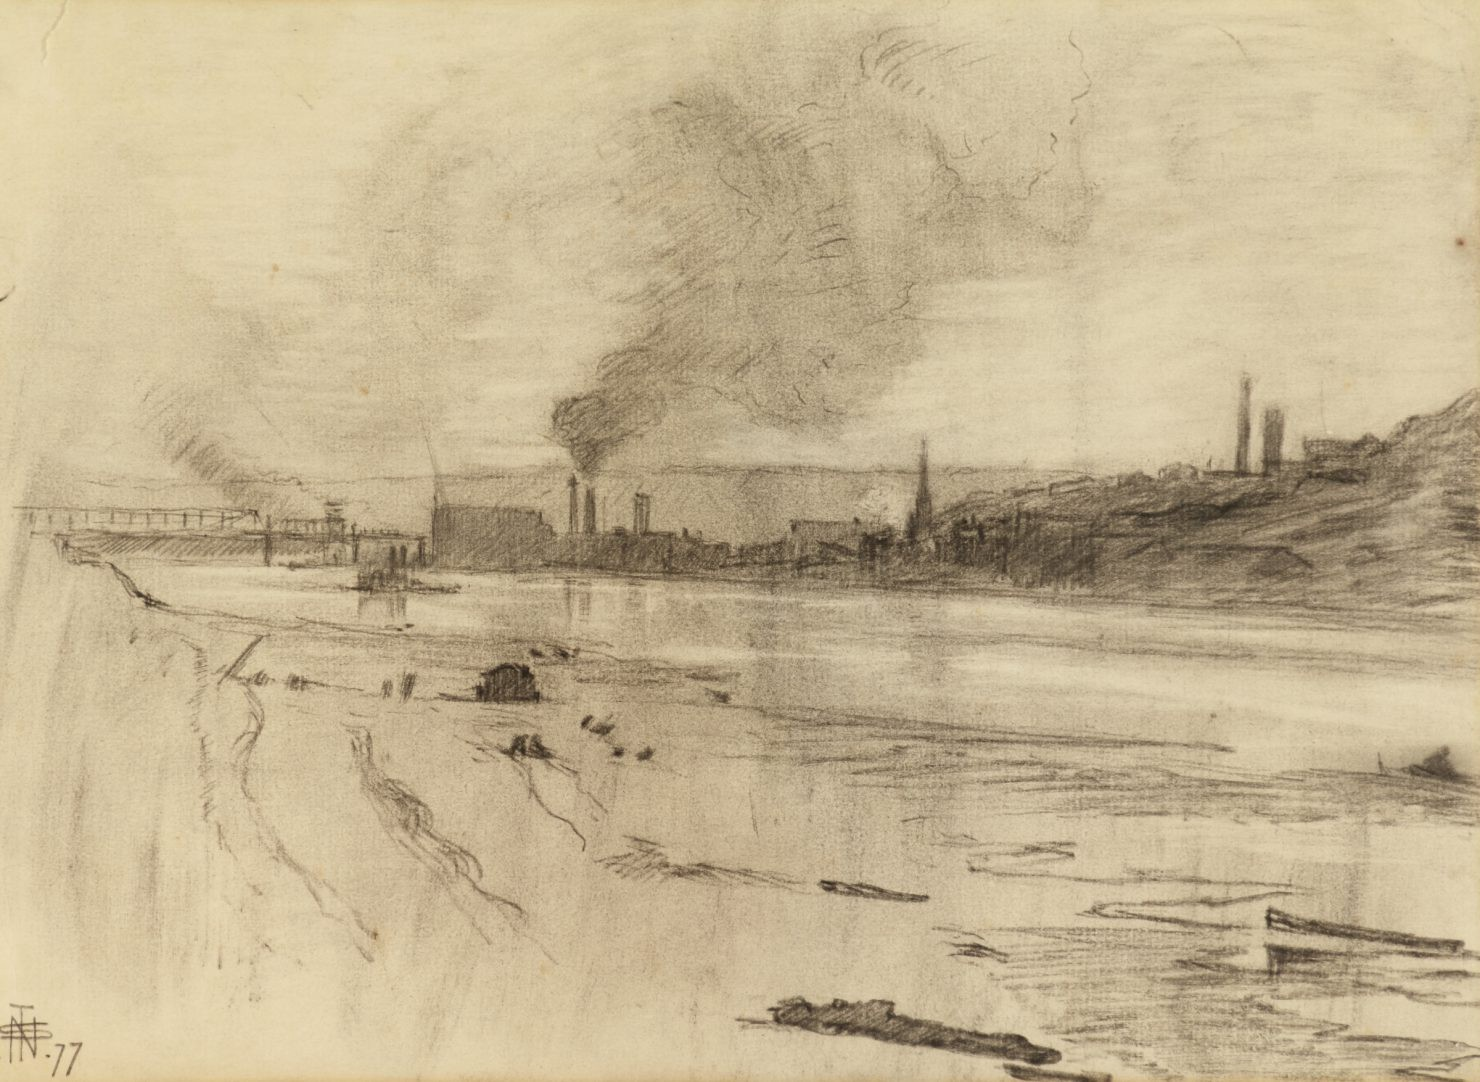 A pencil and charcoal drawing of a river lined with smoke stacks and buildings.